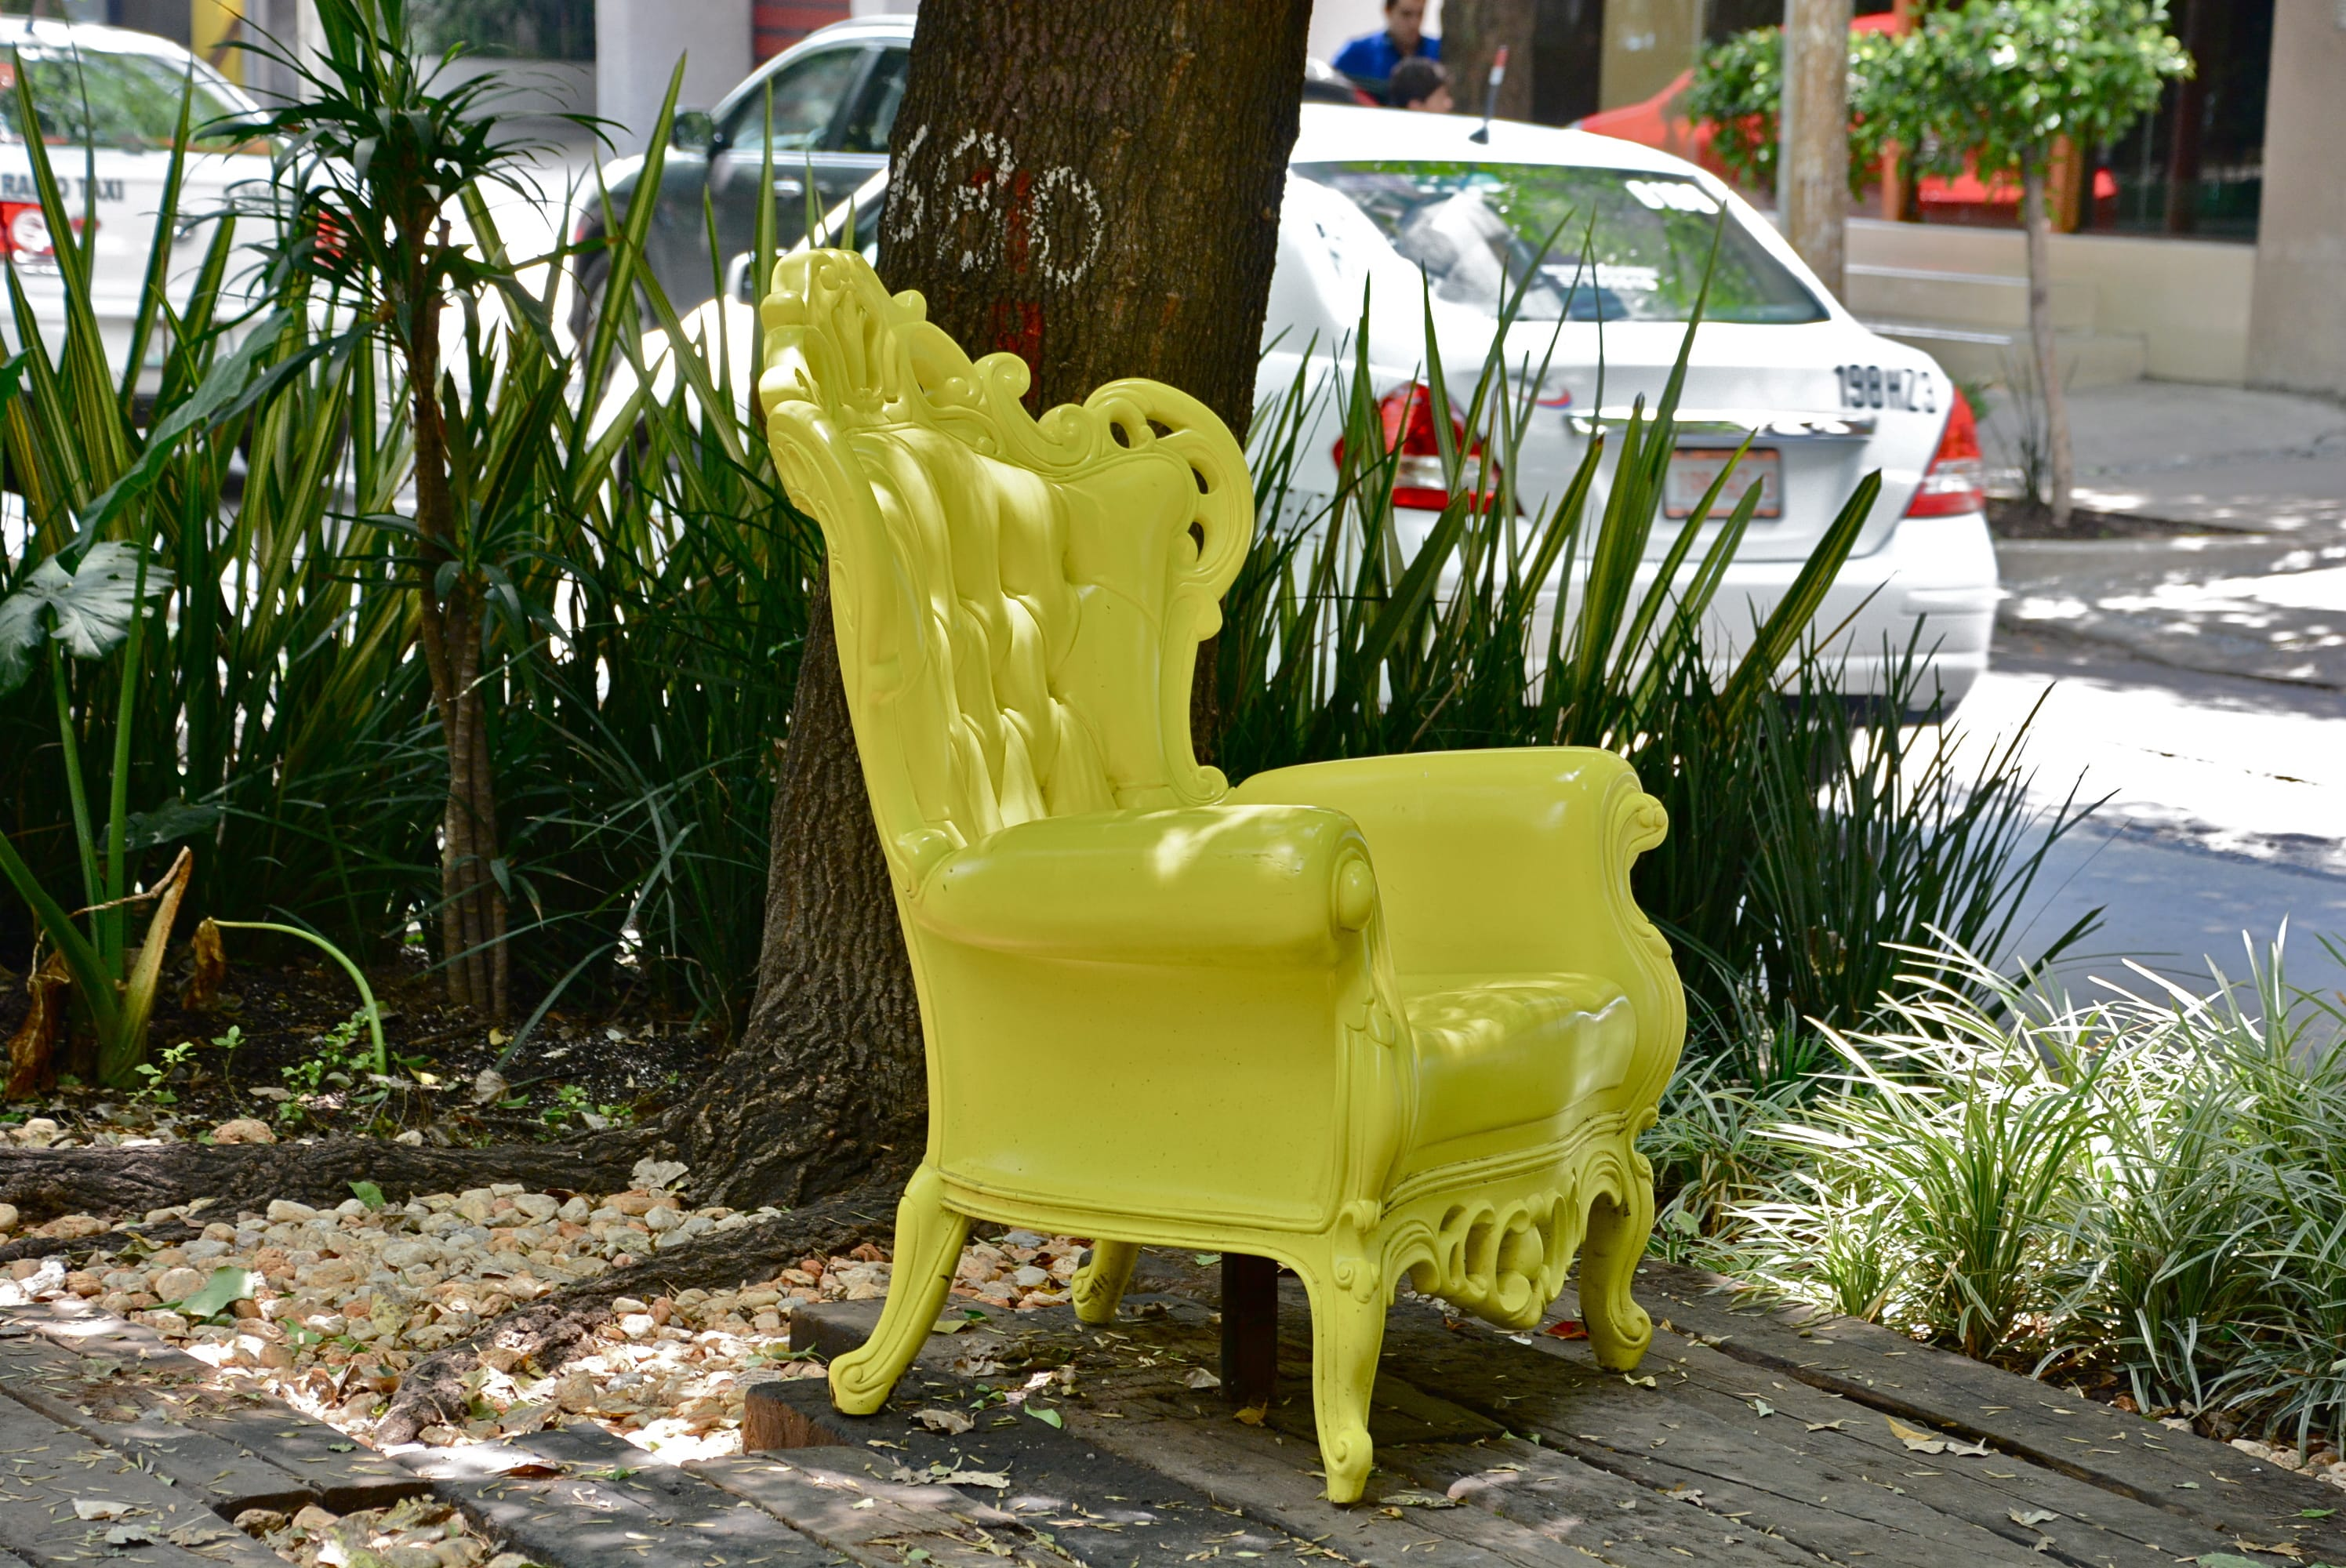 Unexplained yellow chair | © Alejandro/Flickr